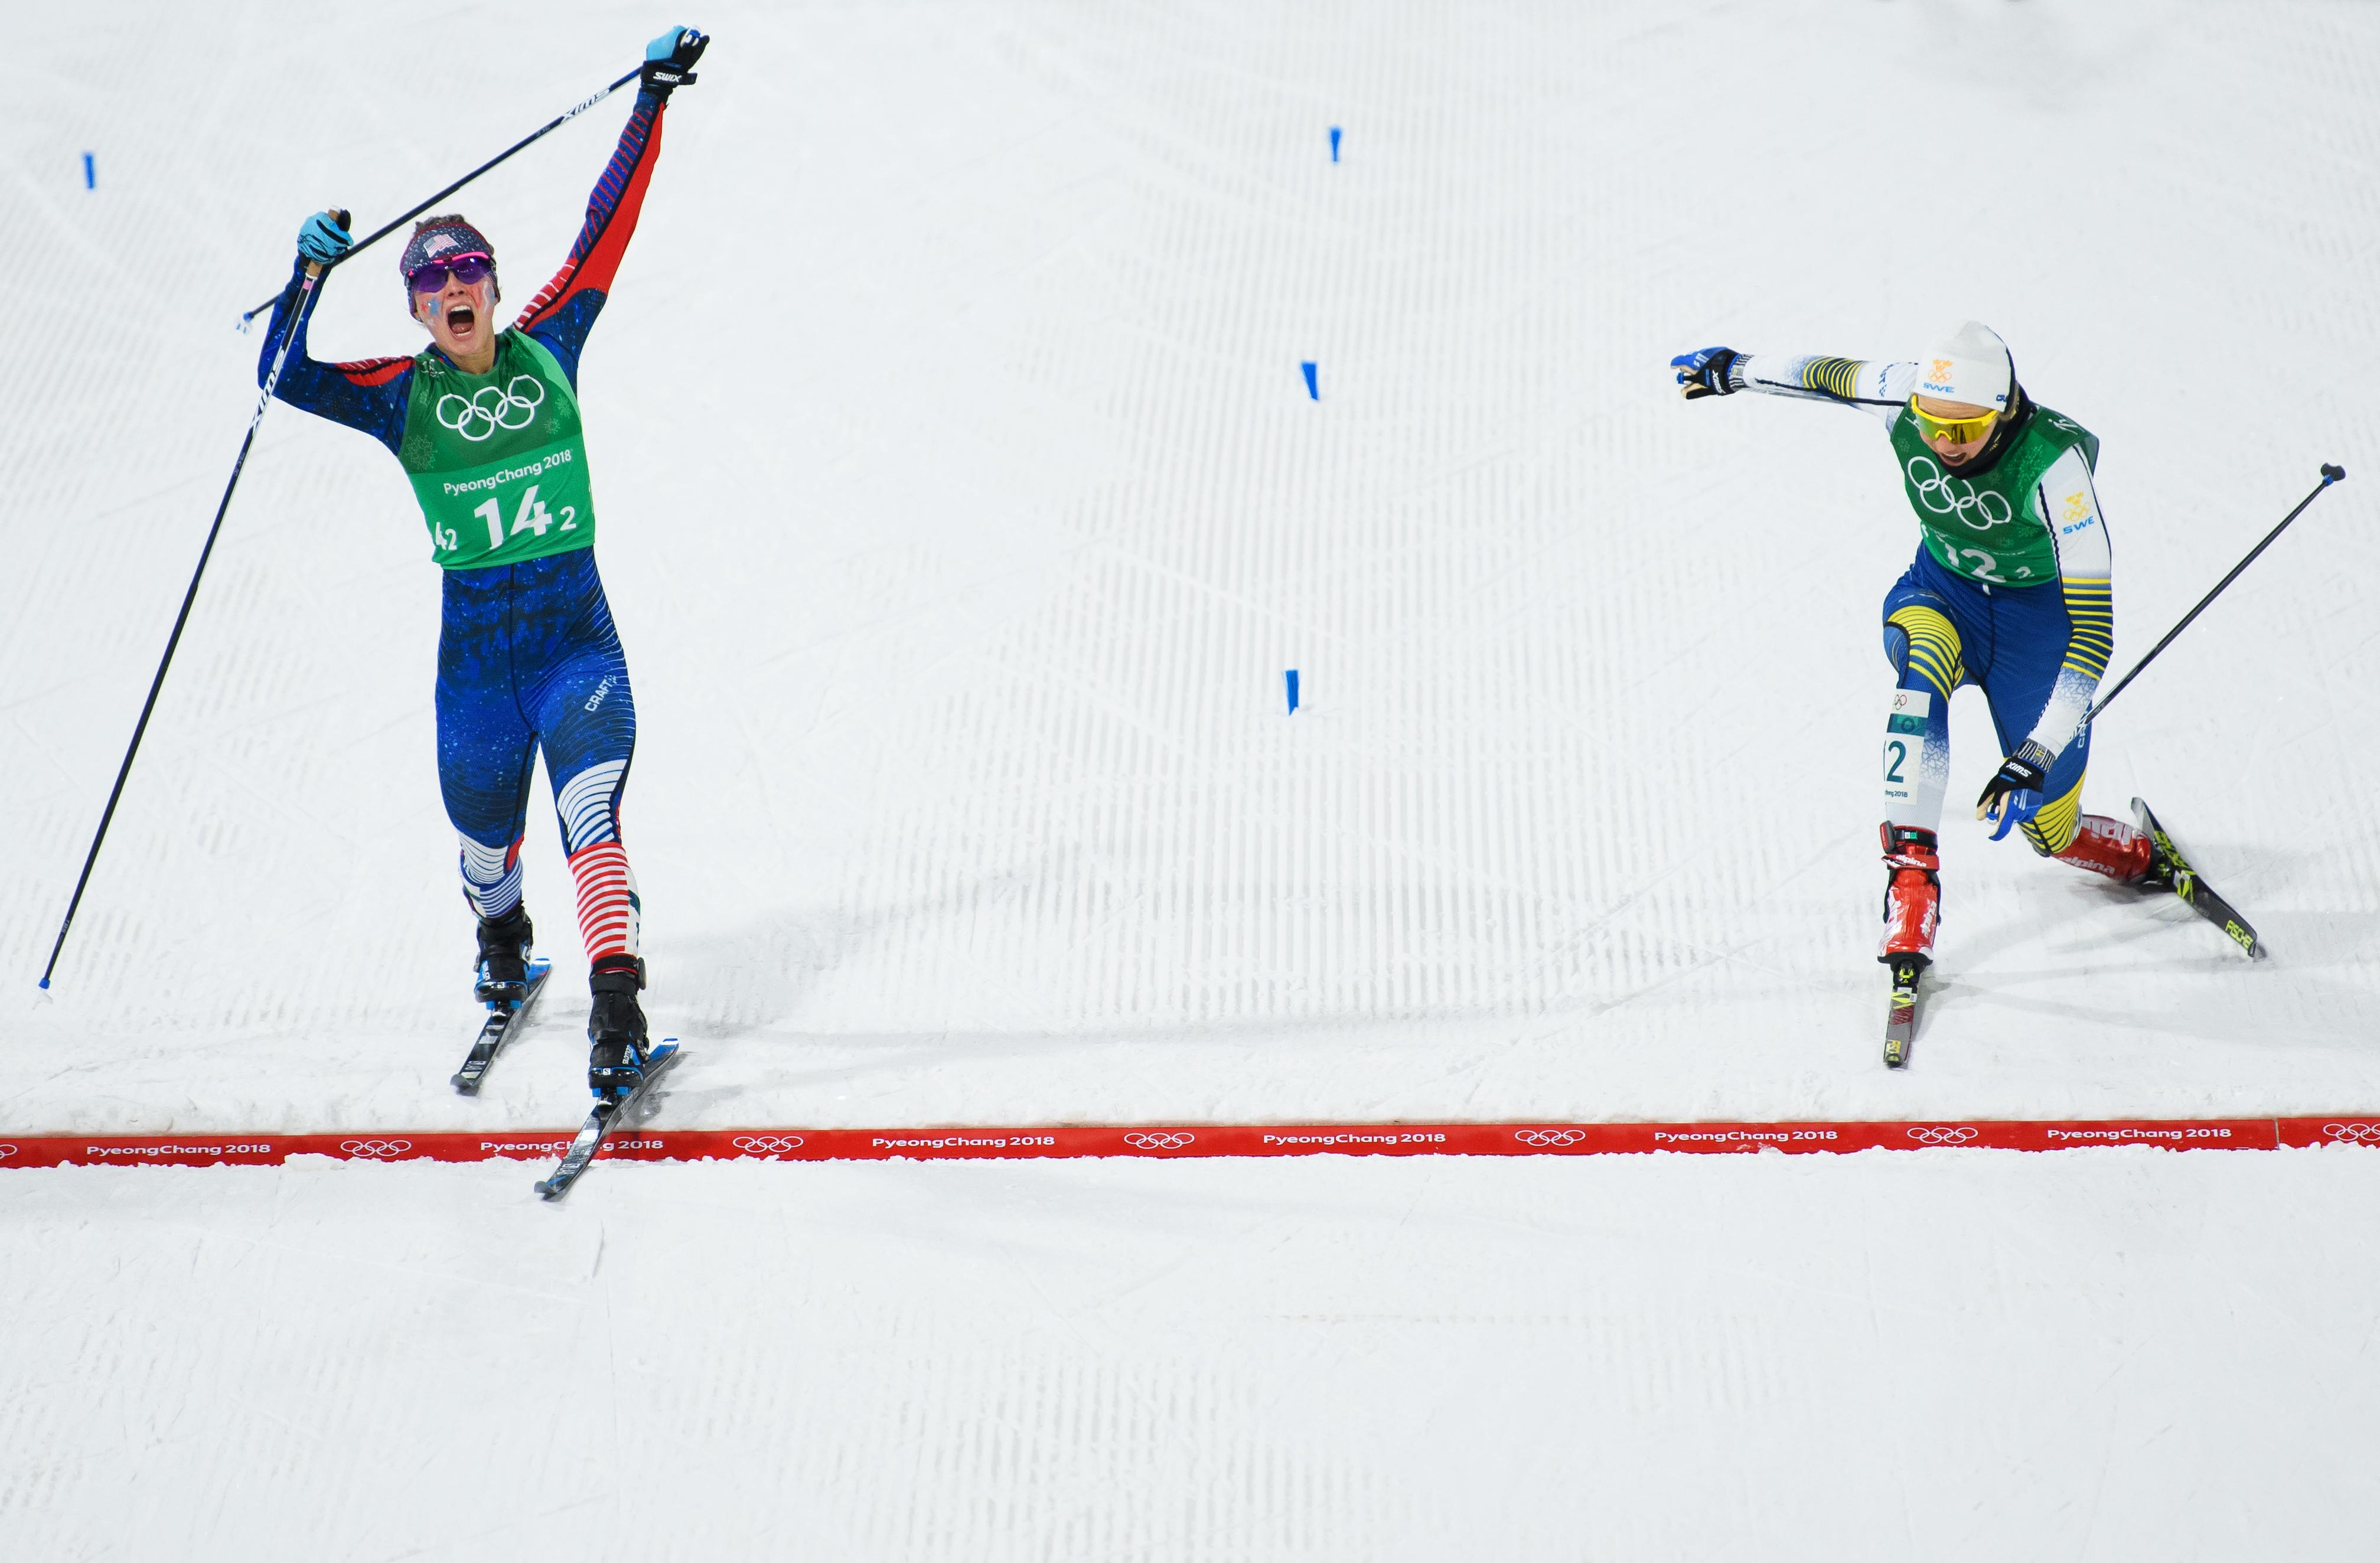 Jessie Diggins wins gold and broadcasters lose their minds